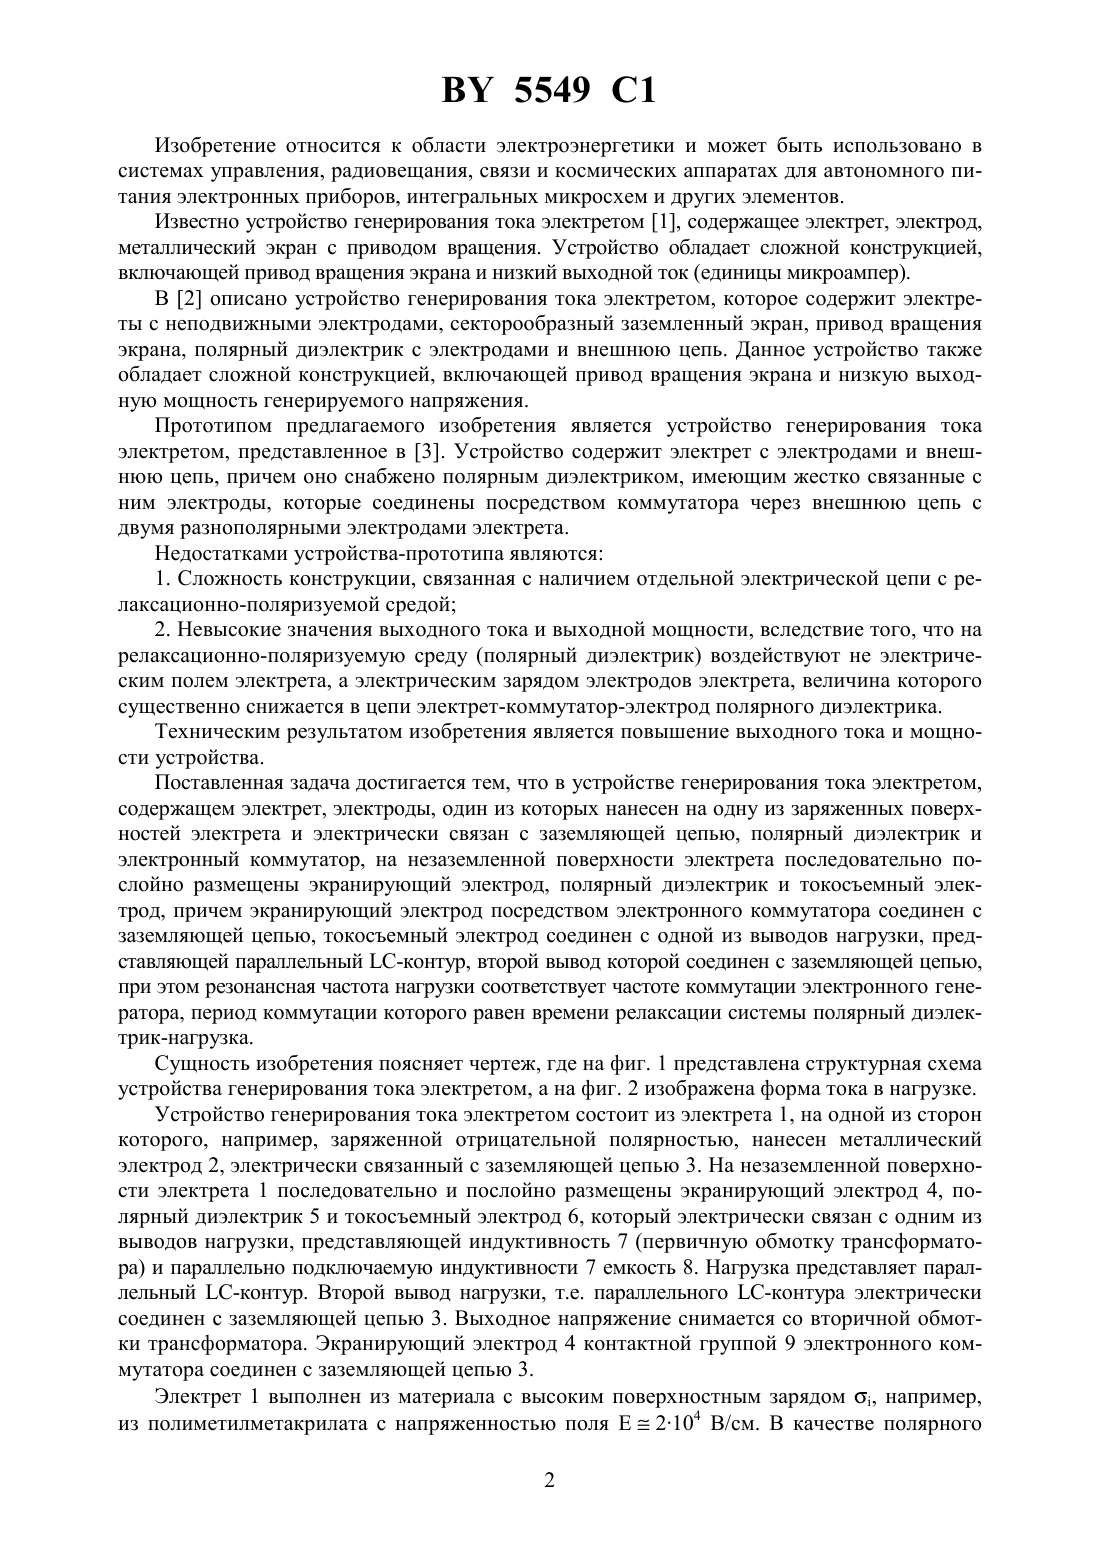 http://bypatents.com/patents/5549-ustrojjstvo-generirovaniya-toka-elektretom-2.png